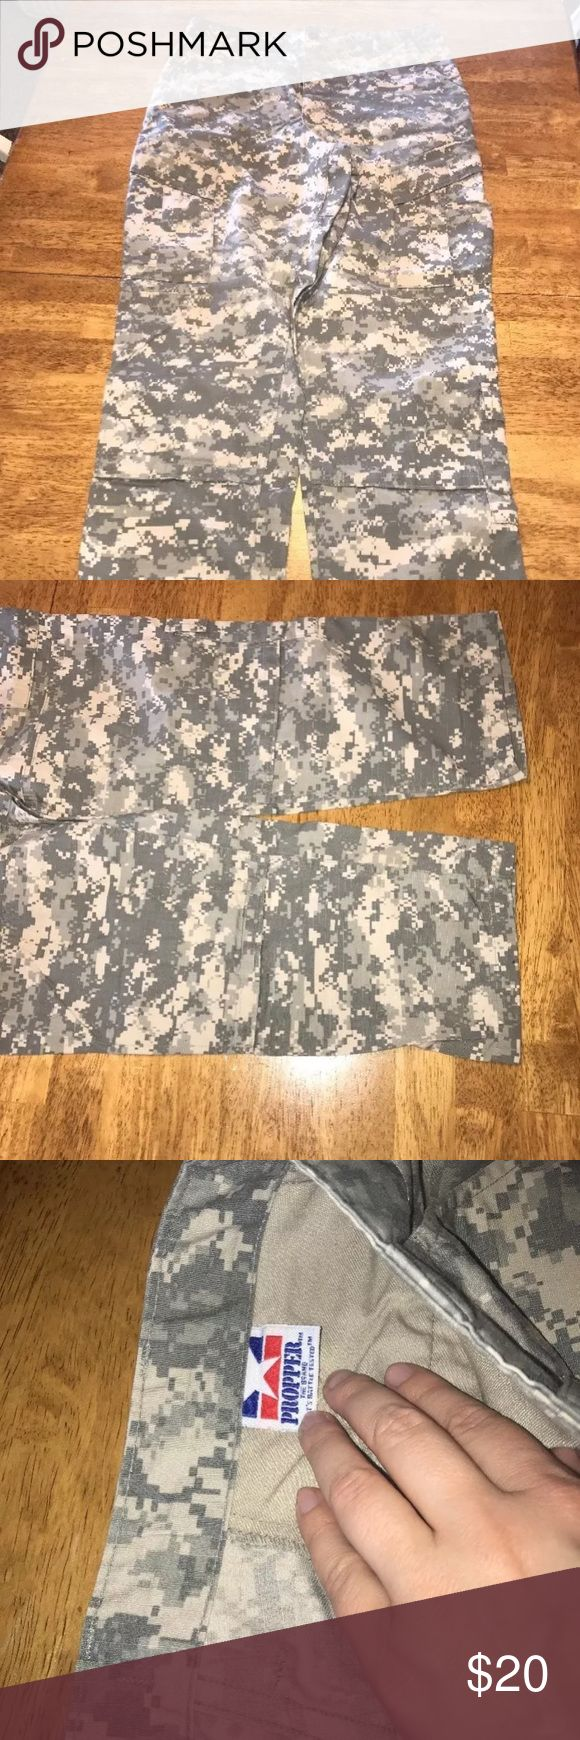 """Propper men's tactical pants camo size medium This is a pair of men's Propper tactical no fly zone camo pants size medium regular. The inseam measures approx 32"""" long. Propper Pants Cargo"""